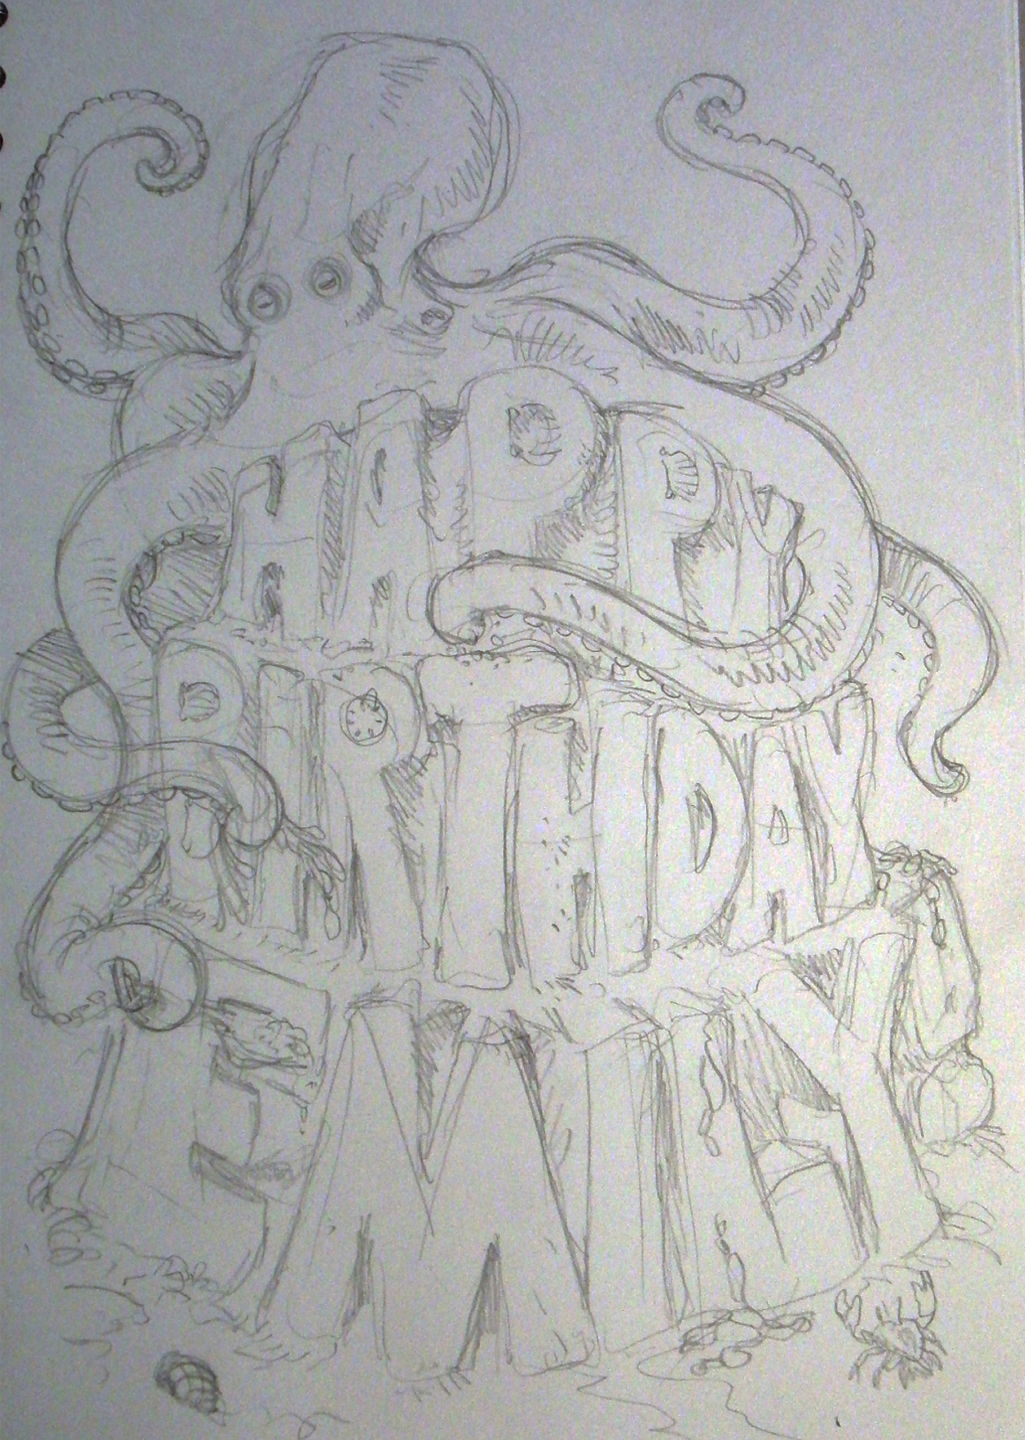 pencil drawing for birthday ; Em%252527s+22nd+birthday+card+in+pencil+form+sm